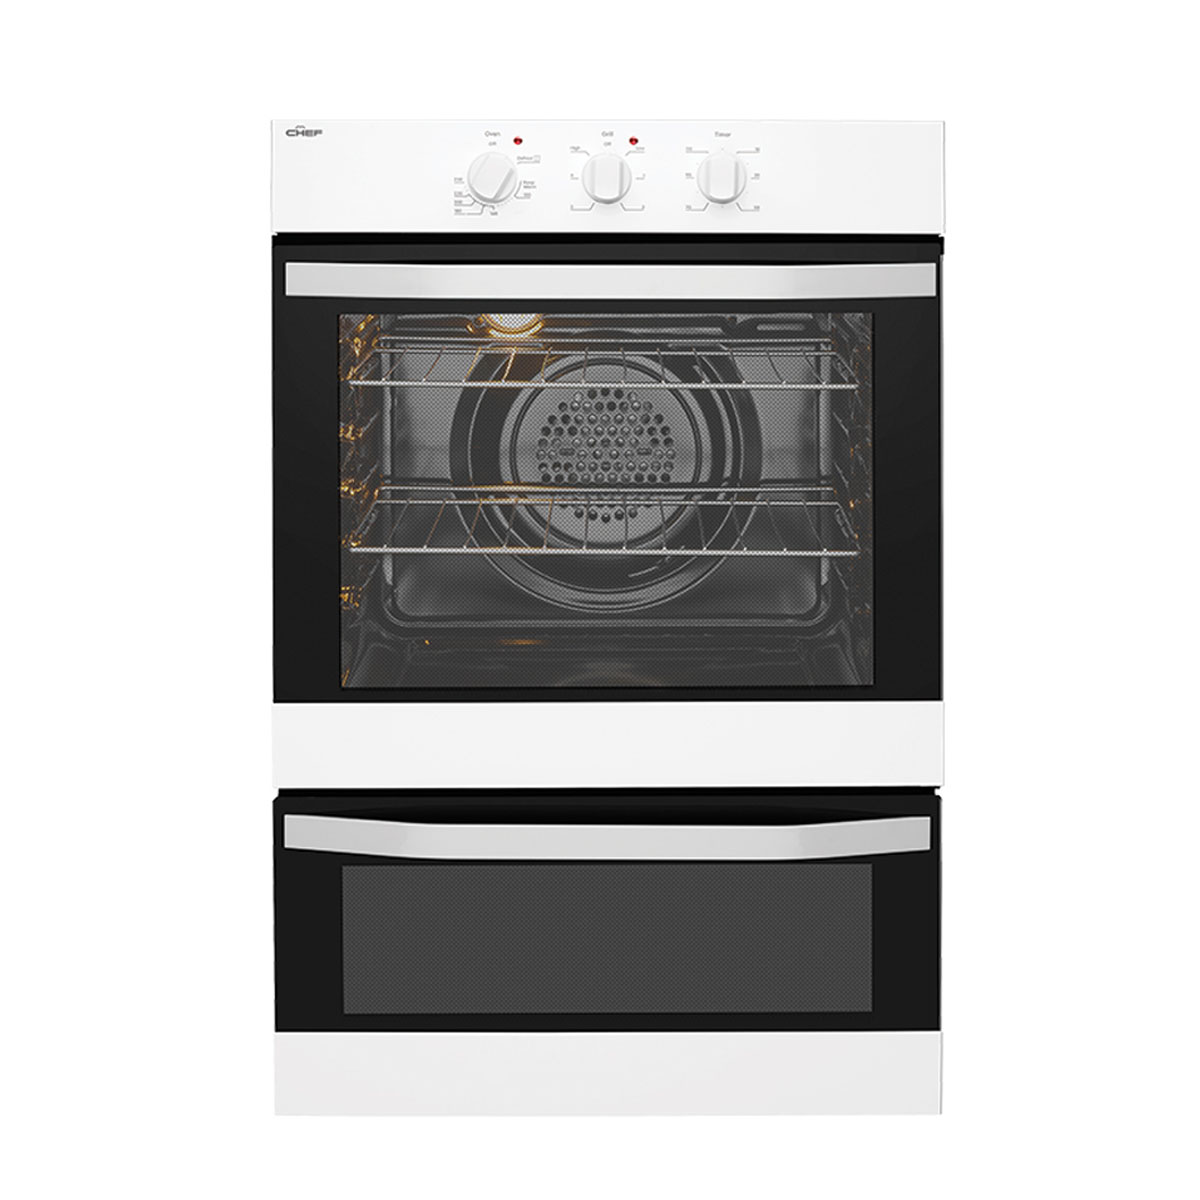 Chef CVE662WA Electric Wall Oven